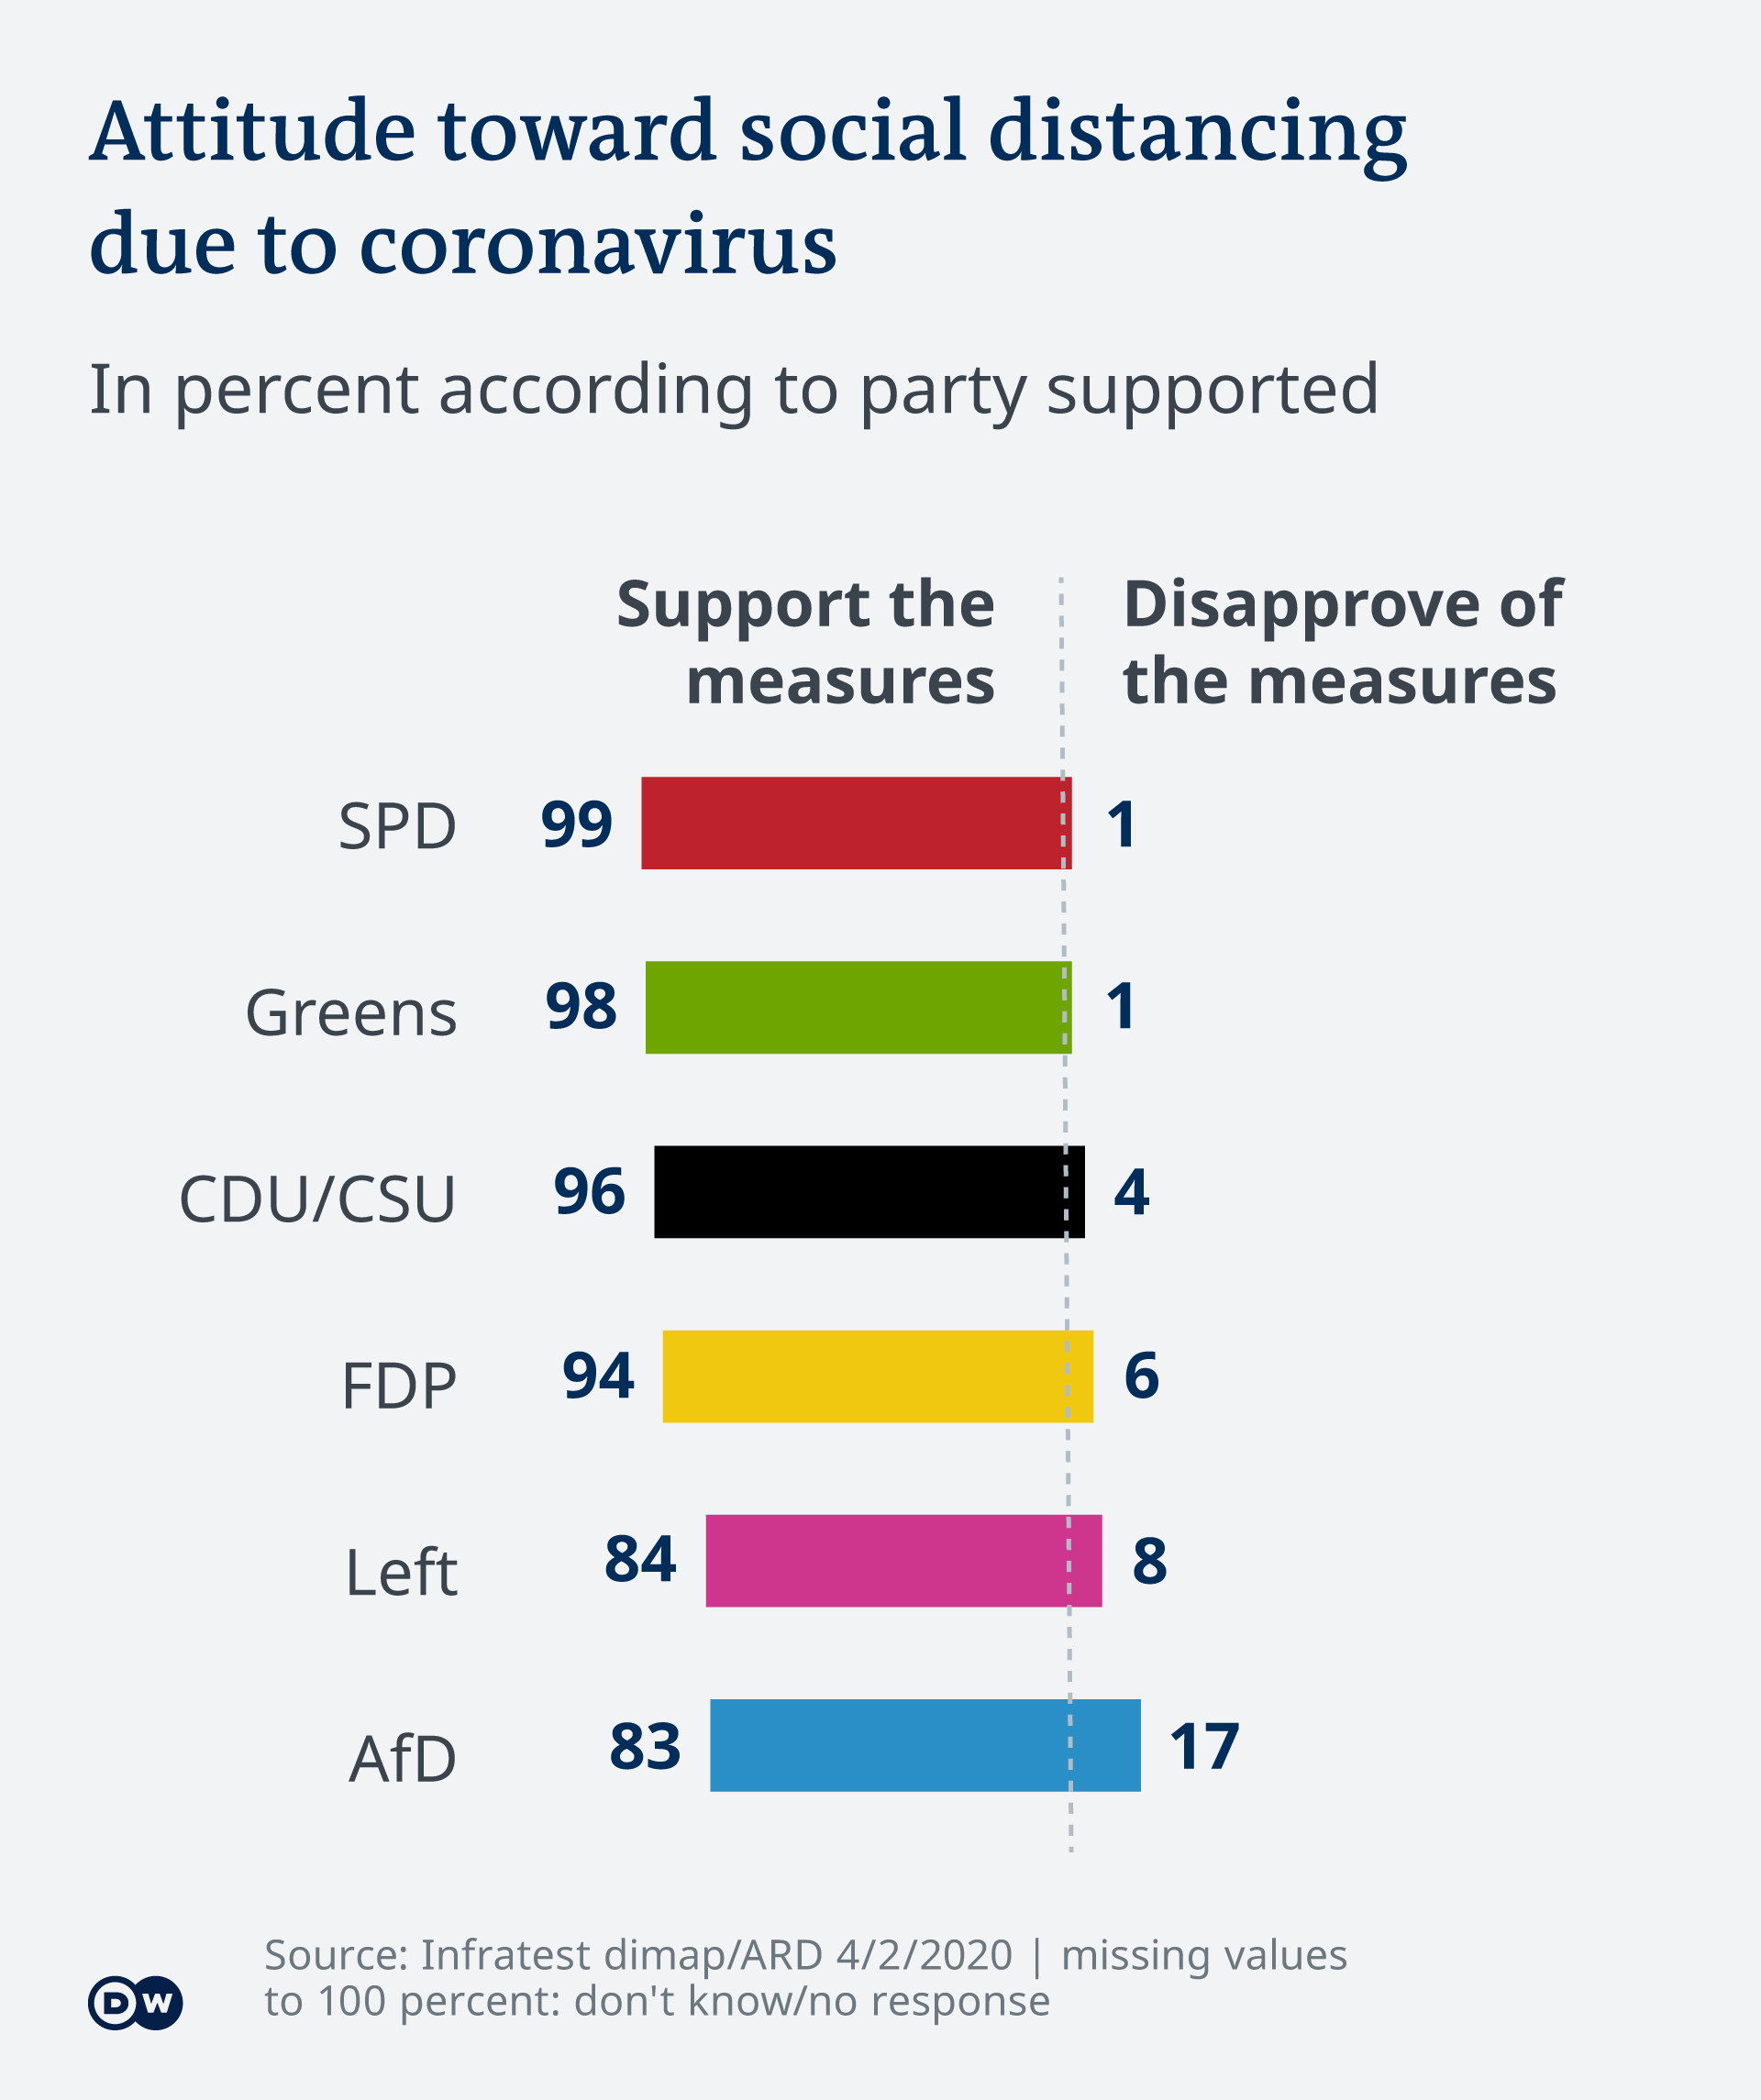 Germans support social distancing